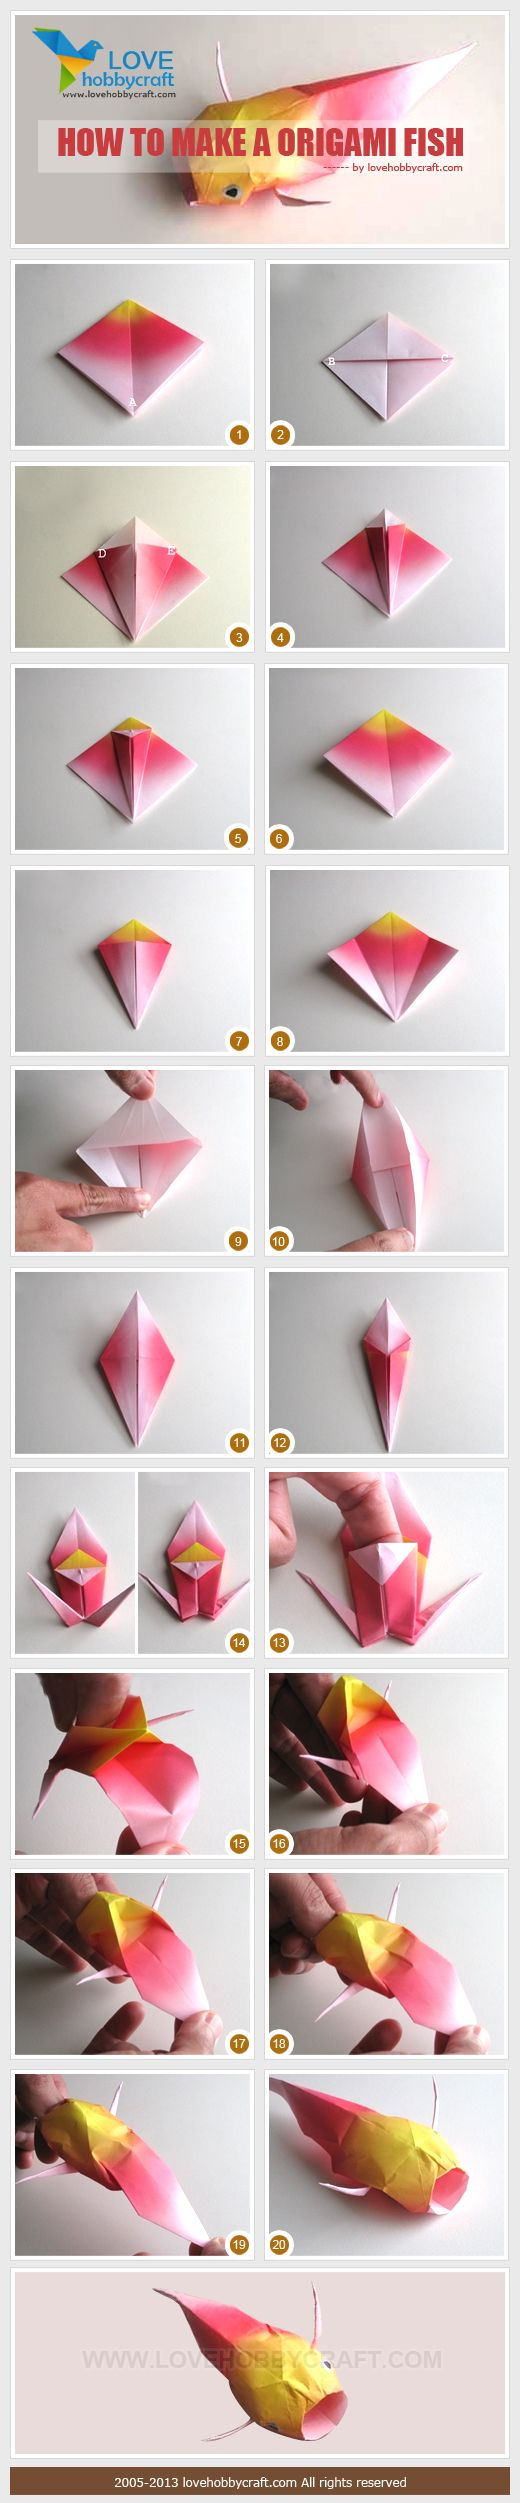 the 25 best ideas about origami fish on pinterest On how to make paper fish